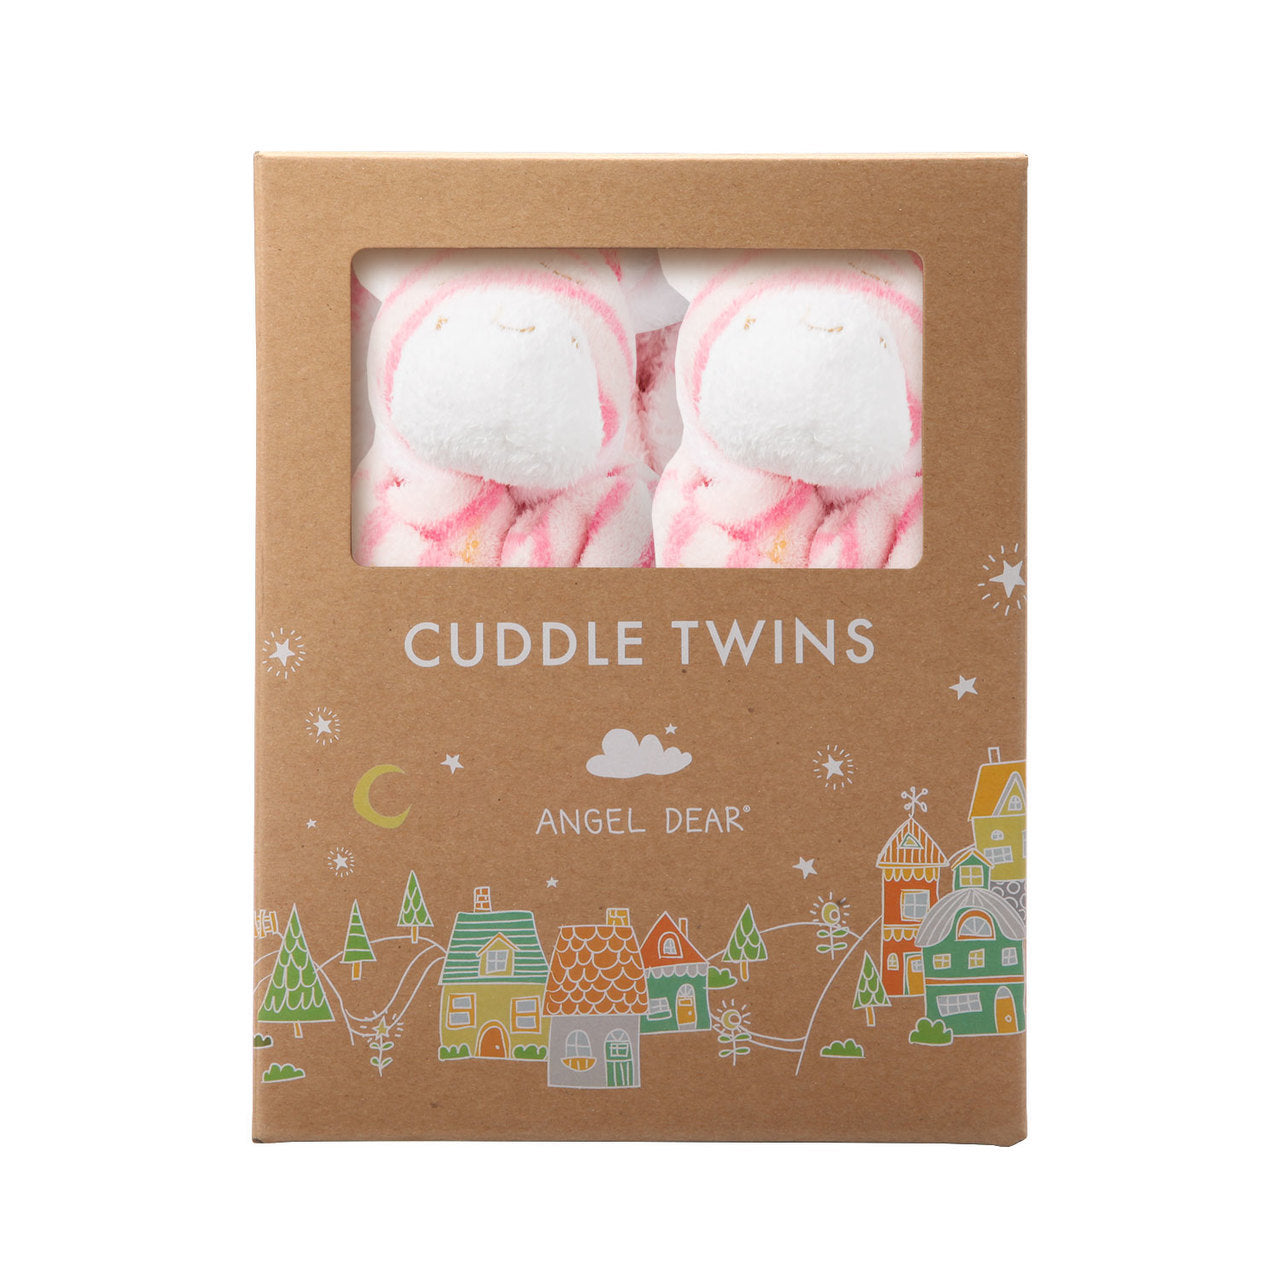 CUDDLE TWINS - PINK ZEBRA